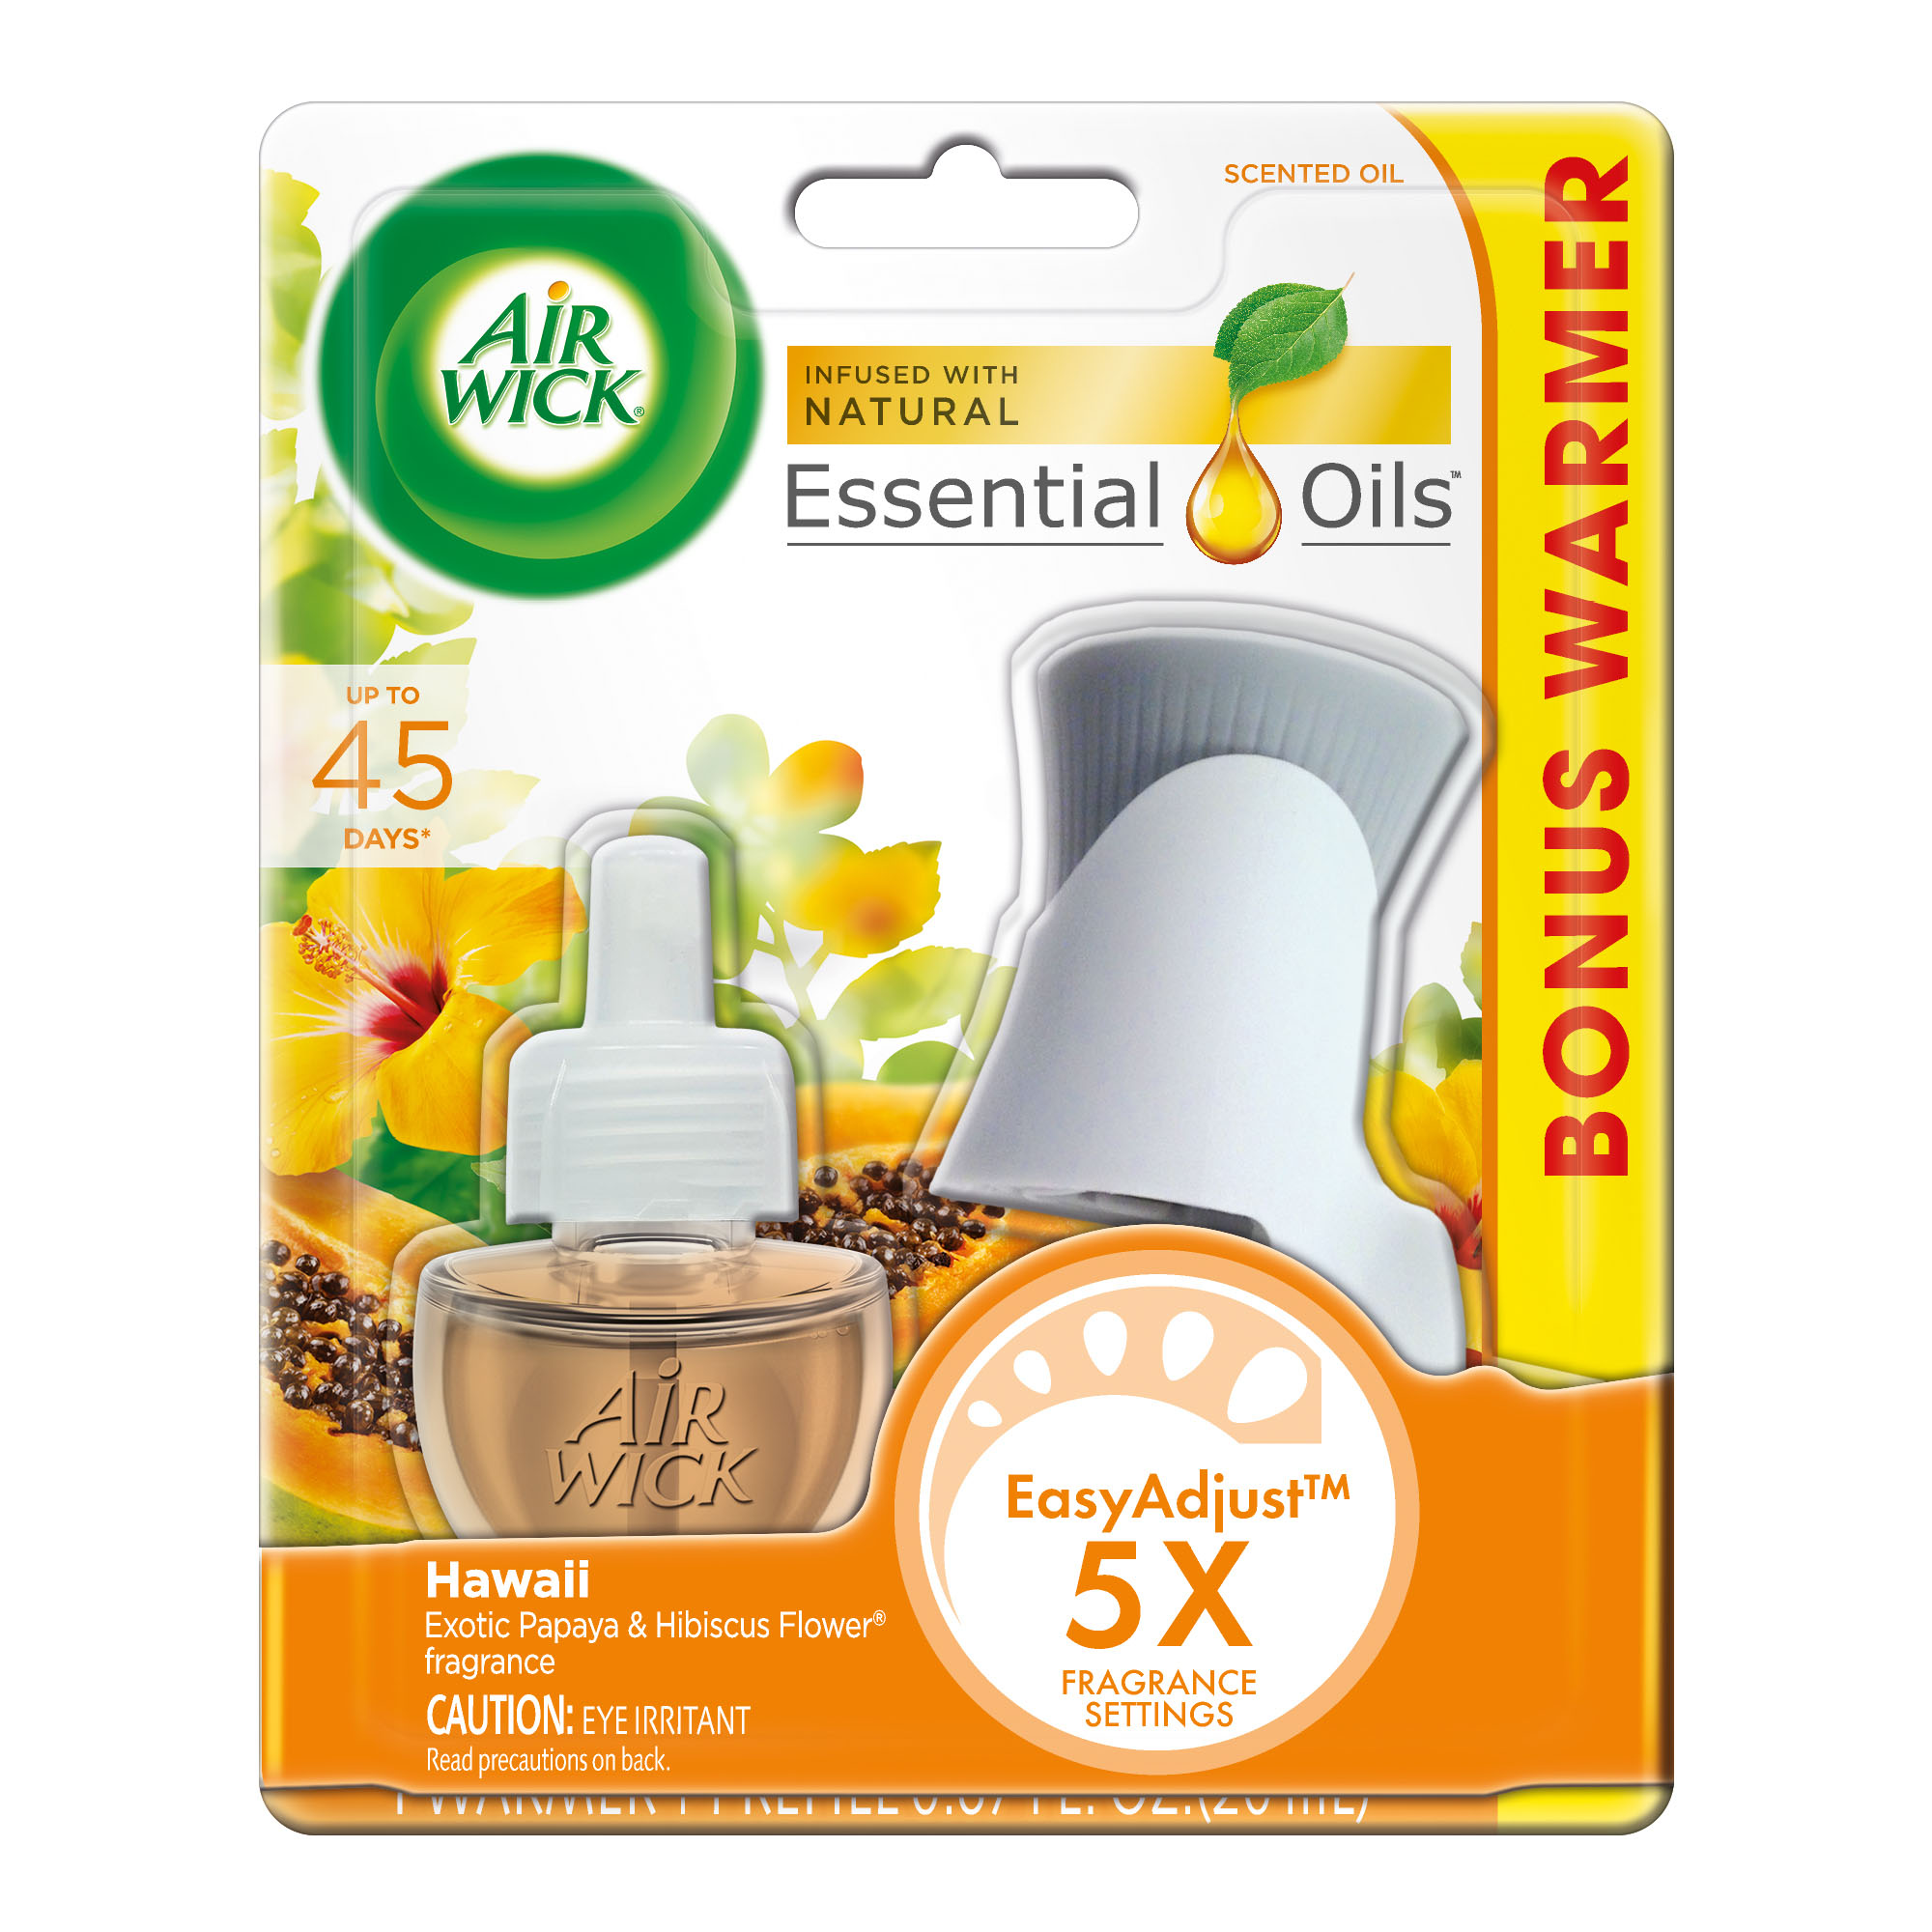 Air Wick Scented Oil Kit (Warmer + 1 Refill), Hawaii, Air Freshener